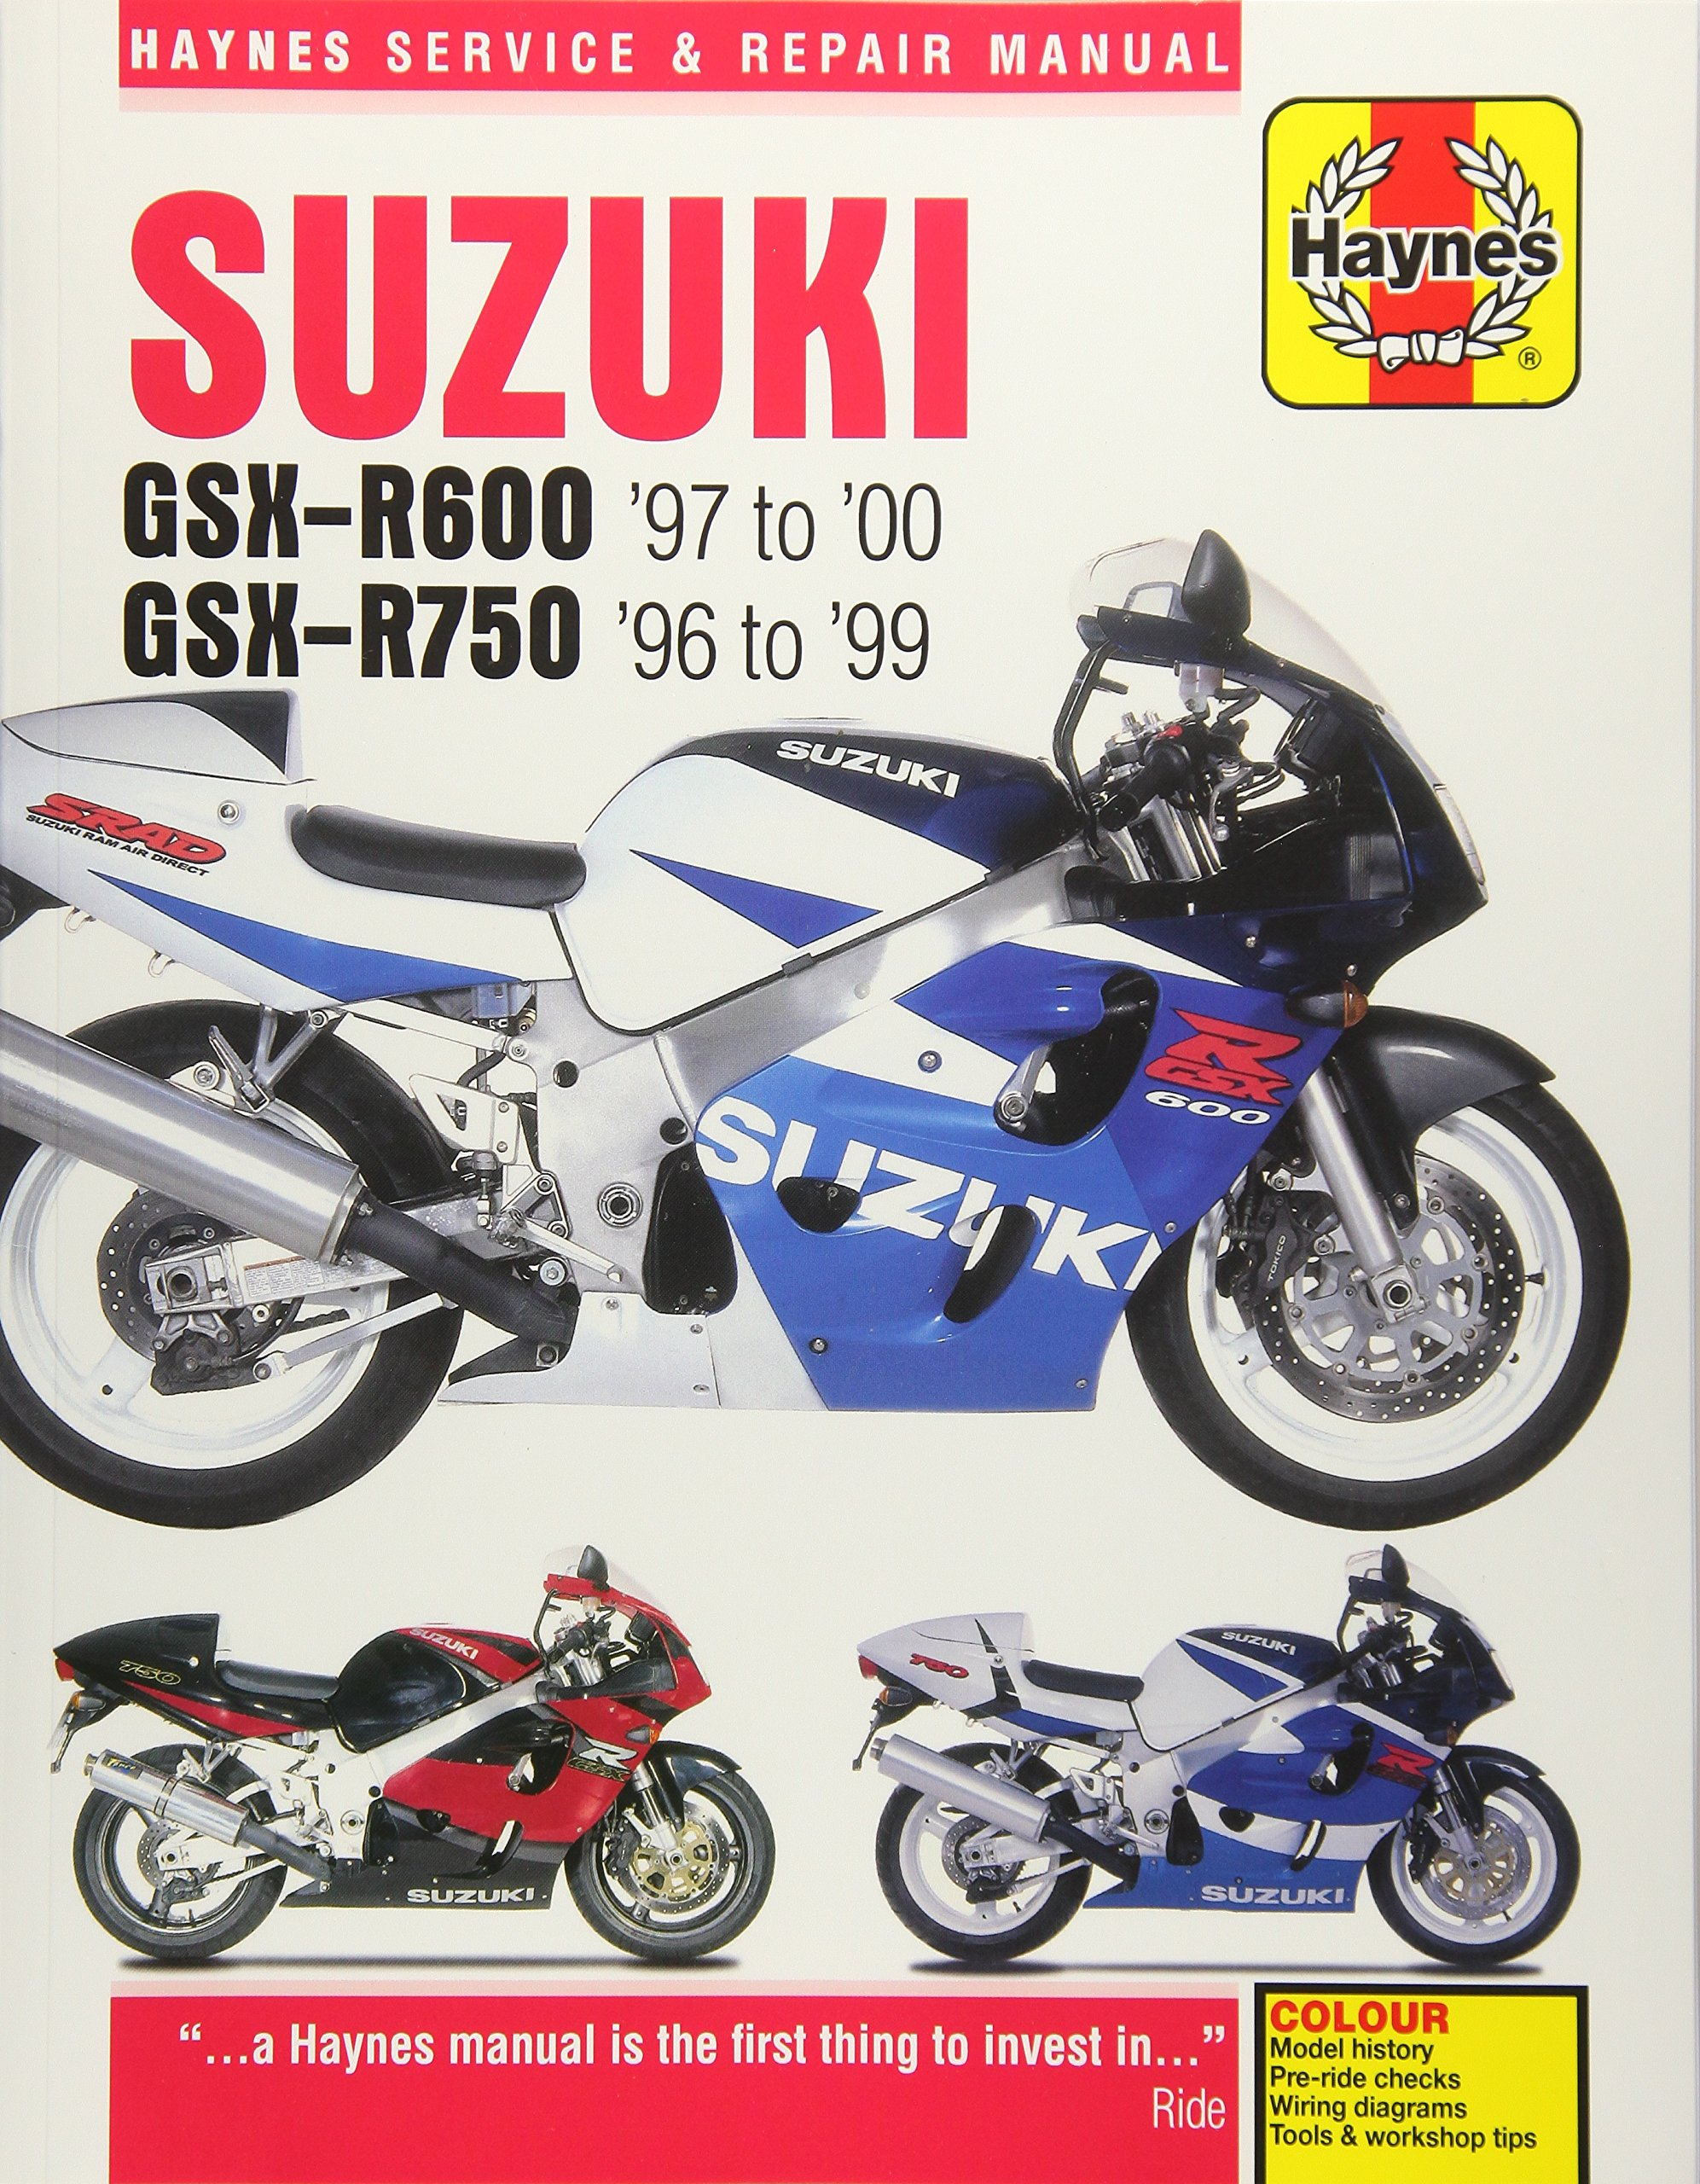 Suzuki GSX-R600 '97 to '00 - GSX-R750 '96 to '99 (Haynes Service & Repair  Manual): Matthew Coombs: 9781785213021: Amazon.com: Books